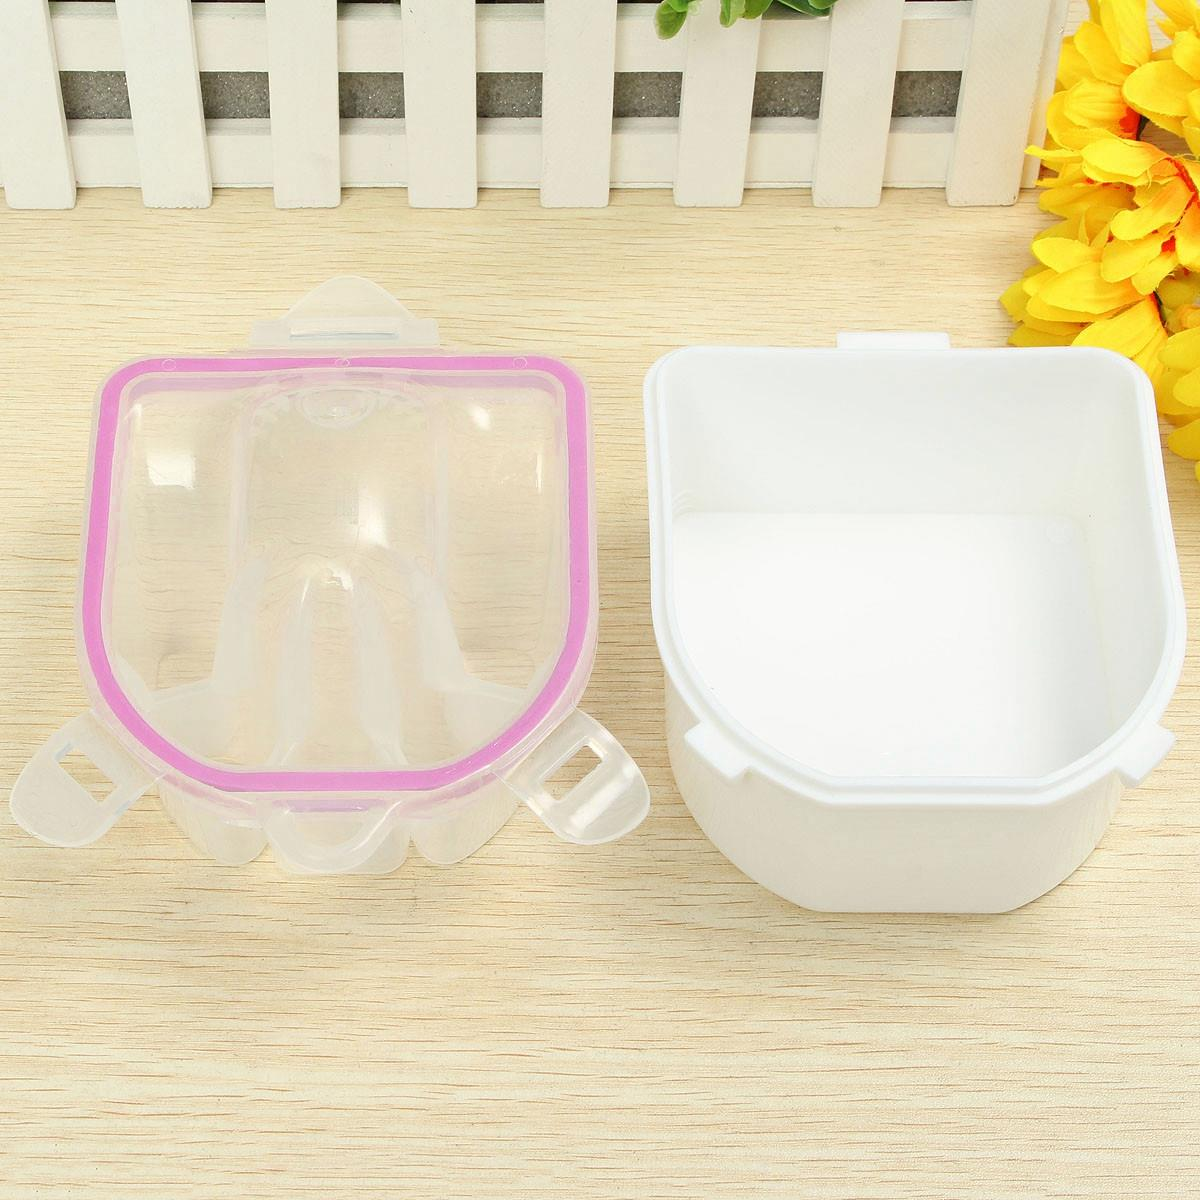 Plastic Manicure Soak Bowl Acrylic Nail Art Tip Remover Cleaner Tool